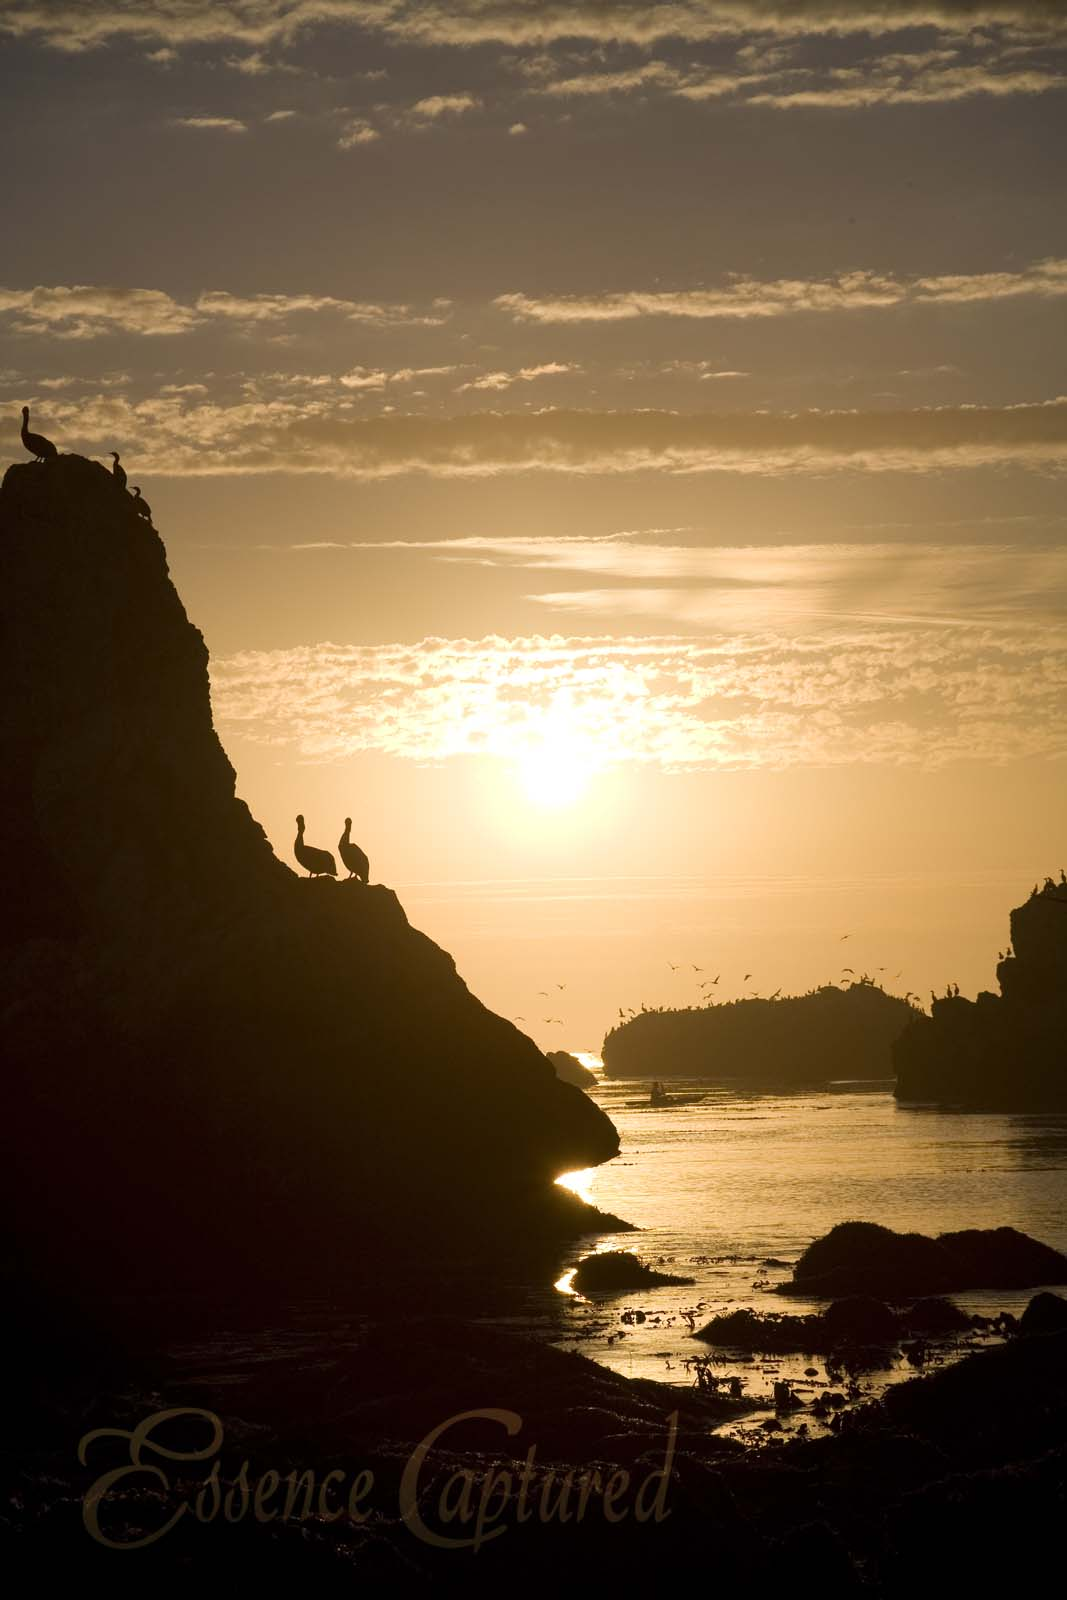 Shell Beach Sunset Rocks silhouetted pelicans kayaker golden orange vertical